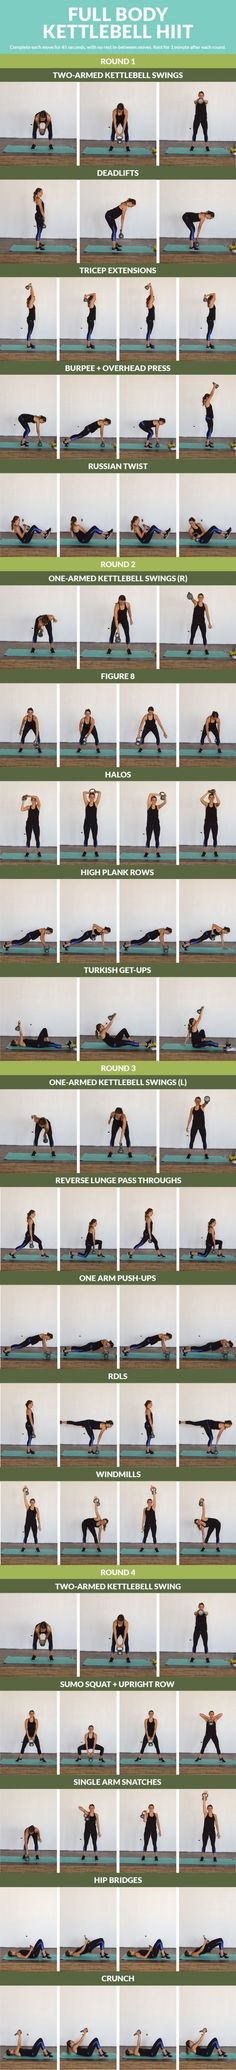 Strengthen your entire body with this 20 minute cardio and strength kettlebell combo! Mix up your regular workout routine with these fun, yet effective kettlebell exercises. You'll tone multiple mu… #kettlebells #kettlebellexercise